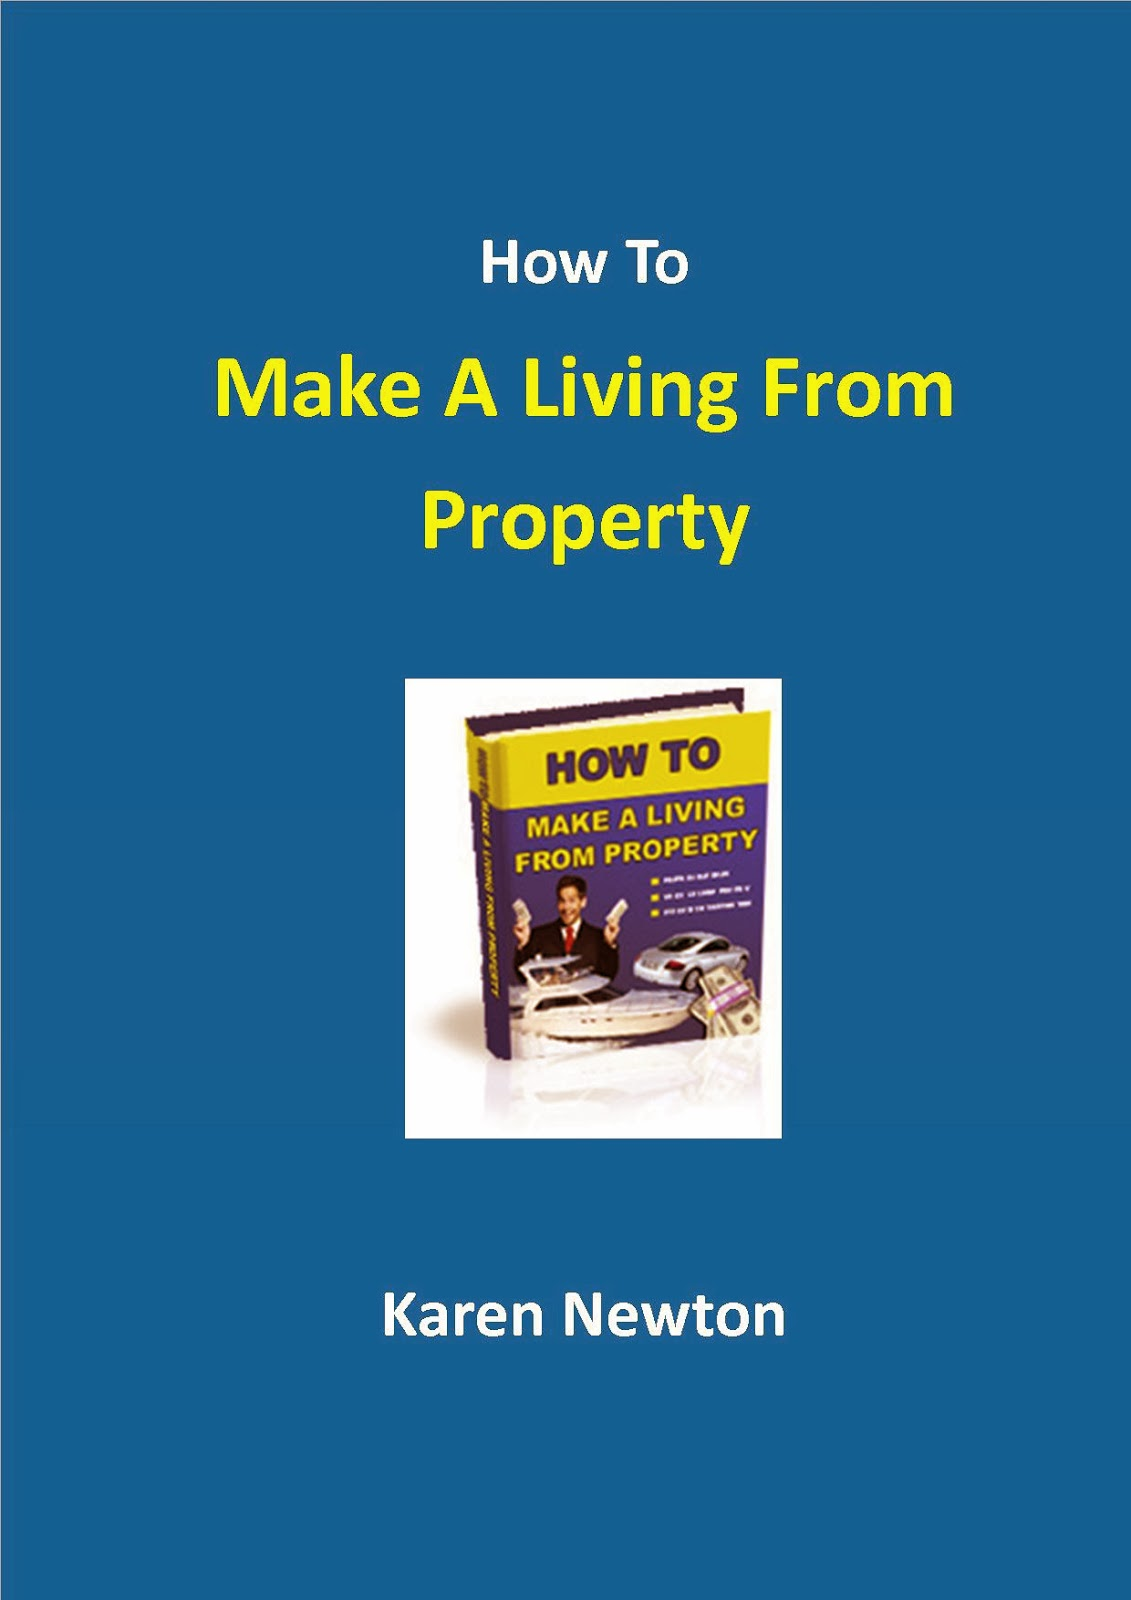 http://www.amazon.co.uk/How-Make-Living-From-Property/dp/1480022195/ref=sr_1_1?ie=UTF8&qid=1389952383&sr=8-1&keywords=karen+newton